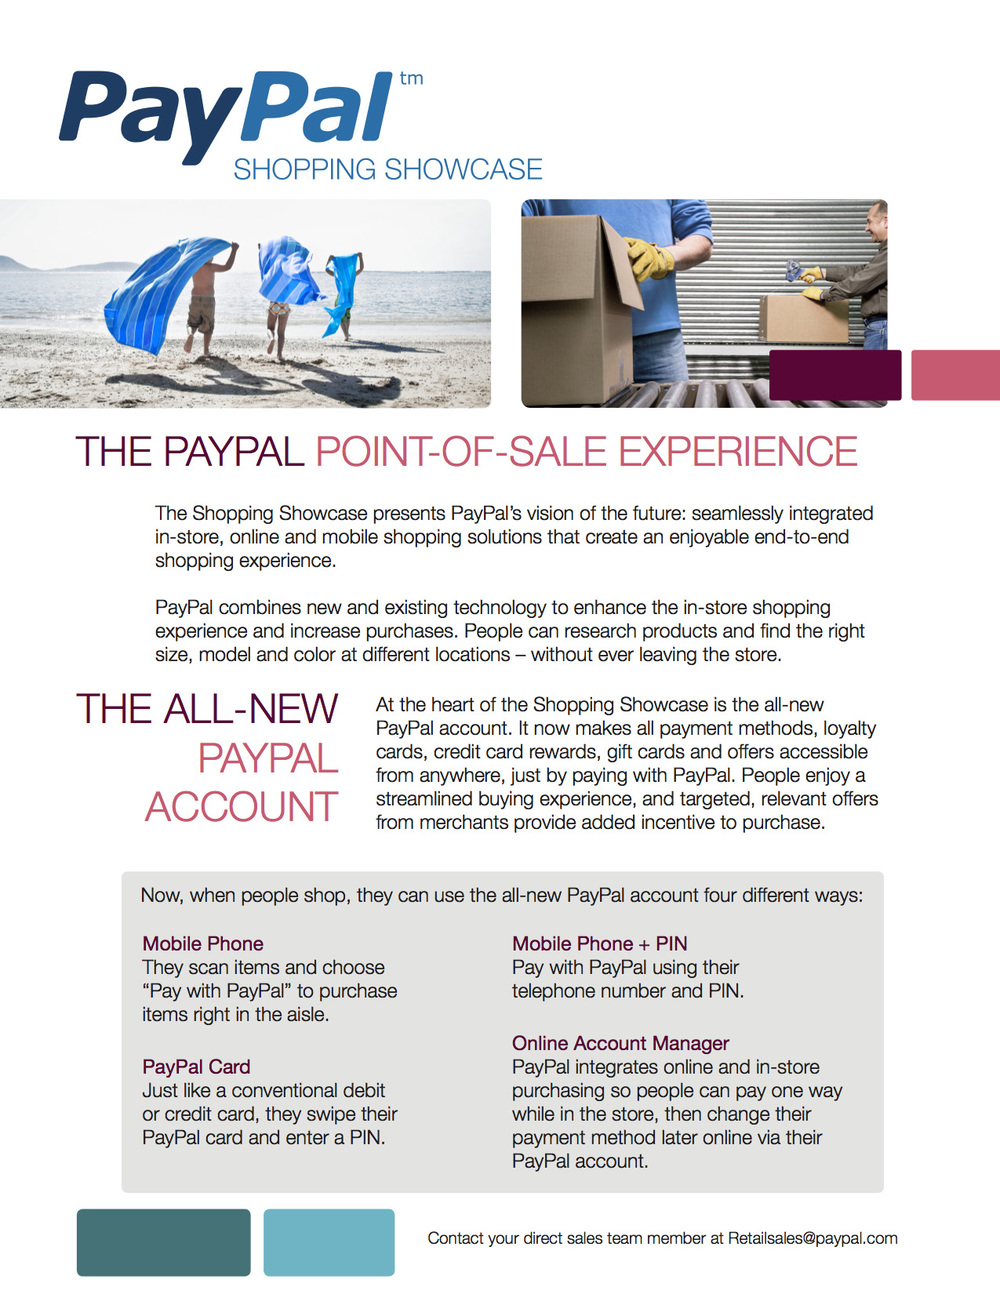 PayPaI: Shopping Showcase – Sell Sheet (Front)